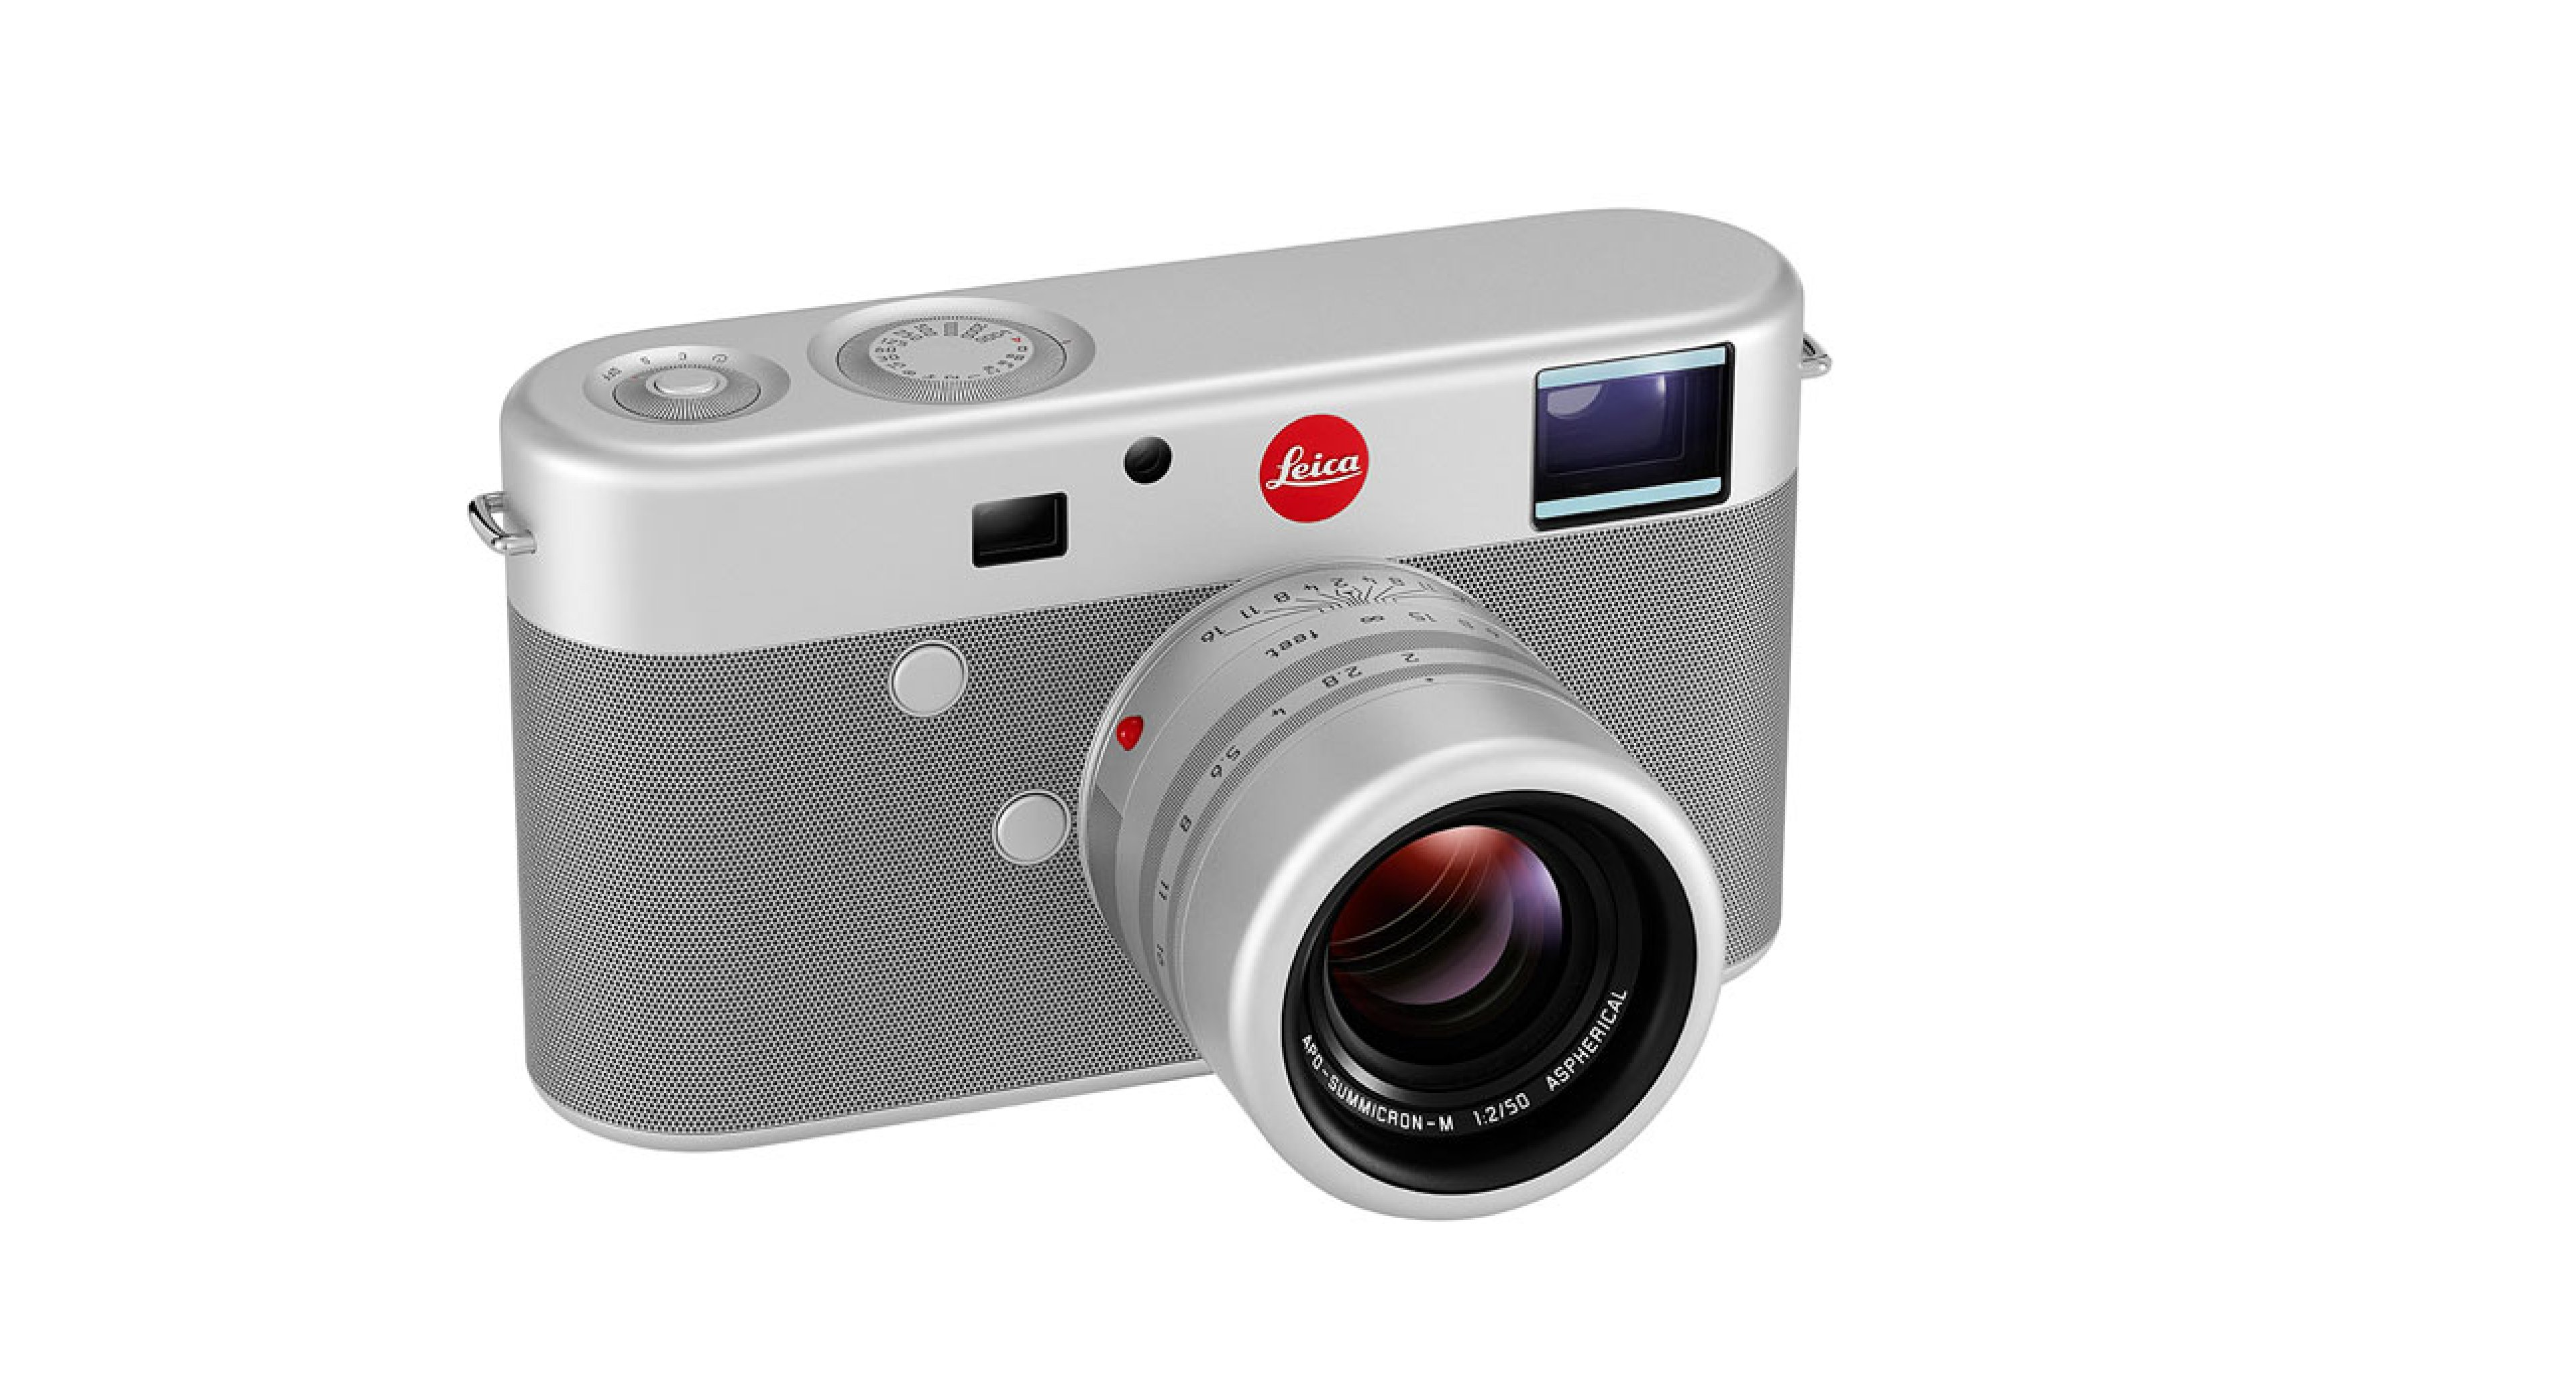 Marc Newson designed this special Leica for the Sotheby's Red Charitiy Auction